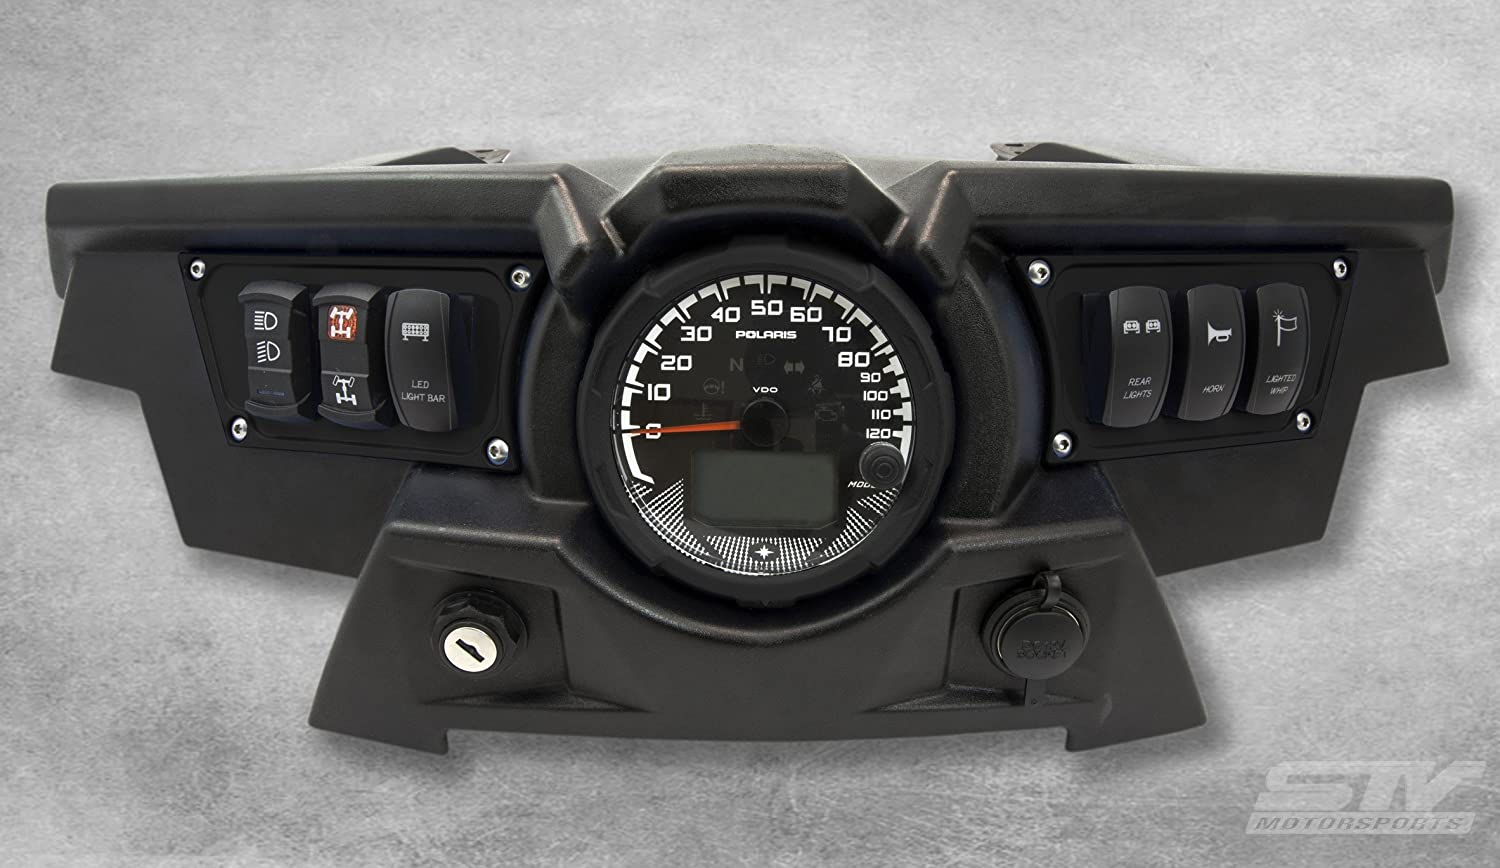 STVMotorsports Custom Aluminum Black Dash Panel for Polaris RZR XP 1000 with 4 Laser Rocker Switches Included